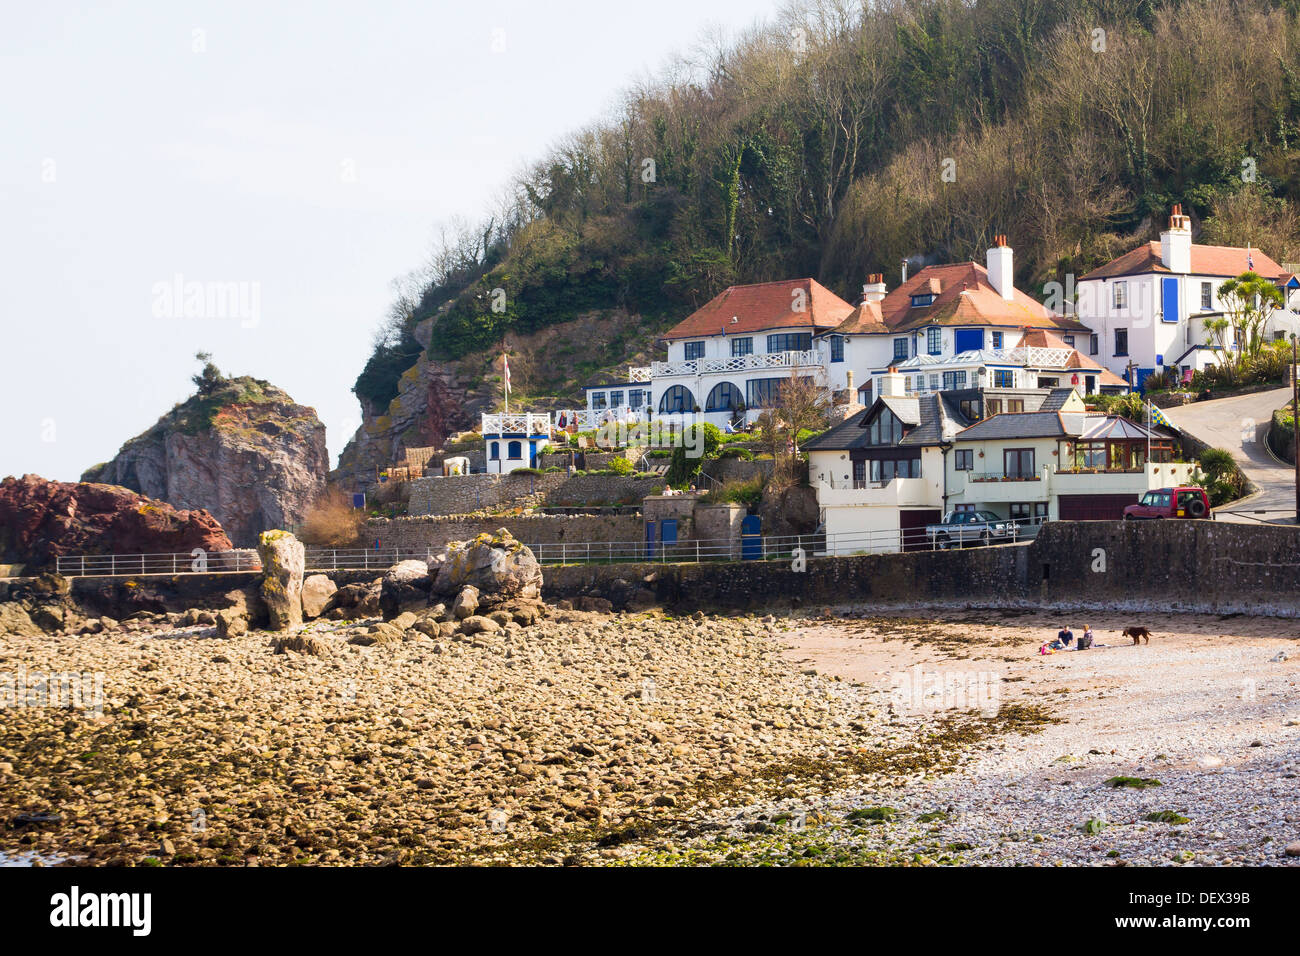 Babbacombe Stock Photos & Babbacombe Stock Images - Alamy